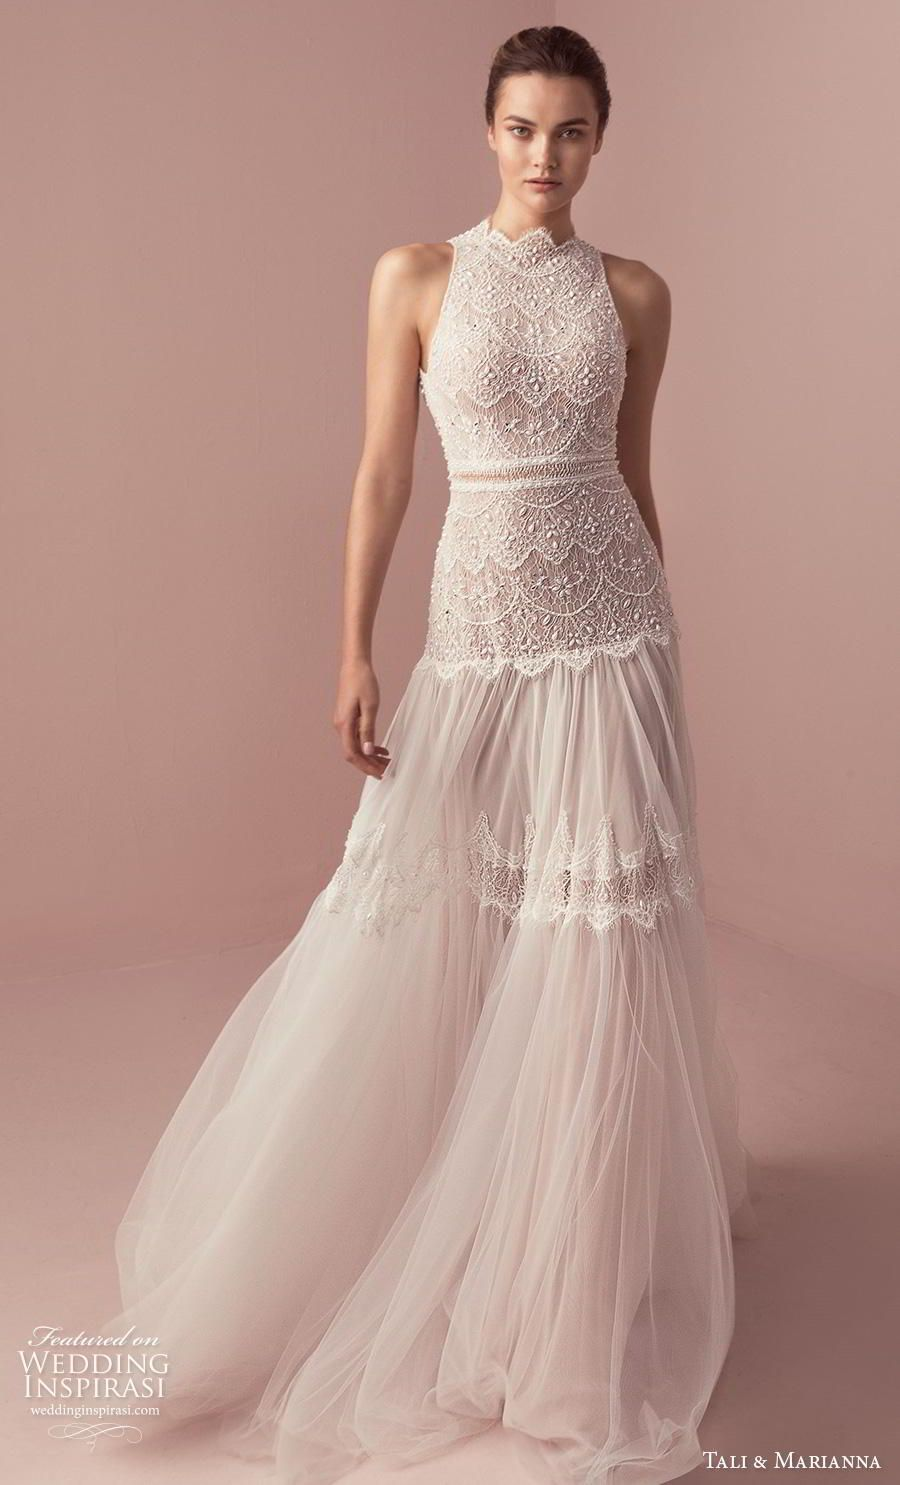 Tali u marianna wedding dresses u ucthe oneud bridal collection